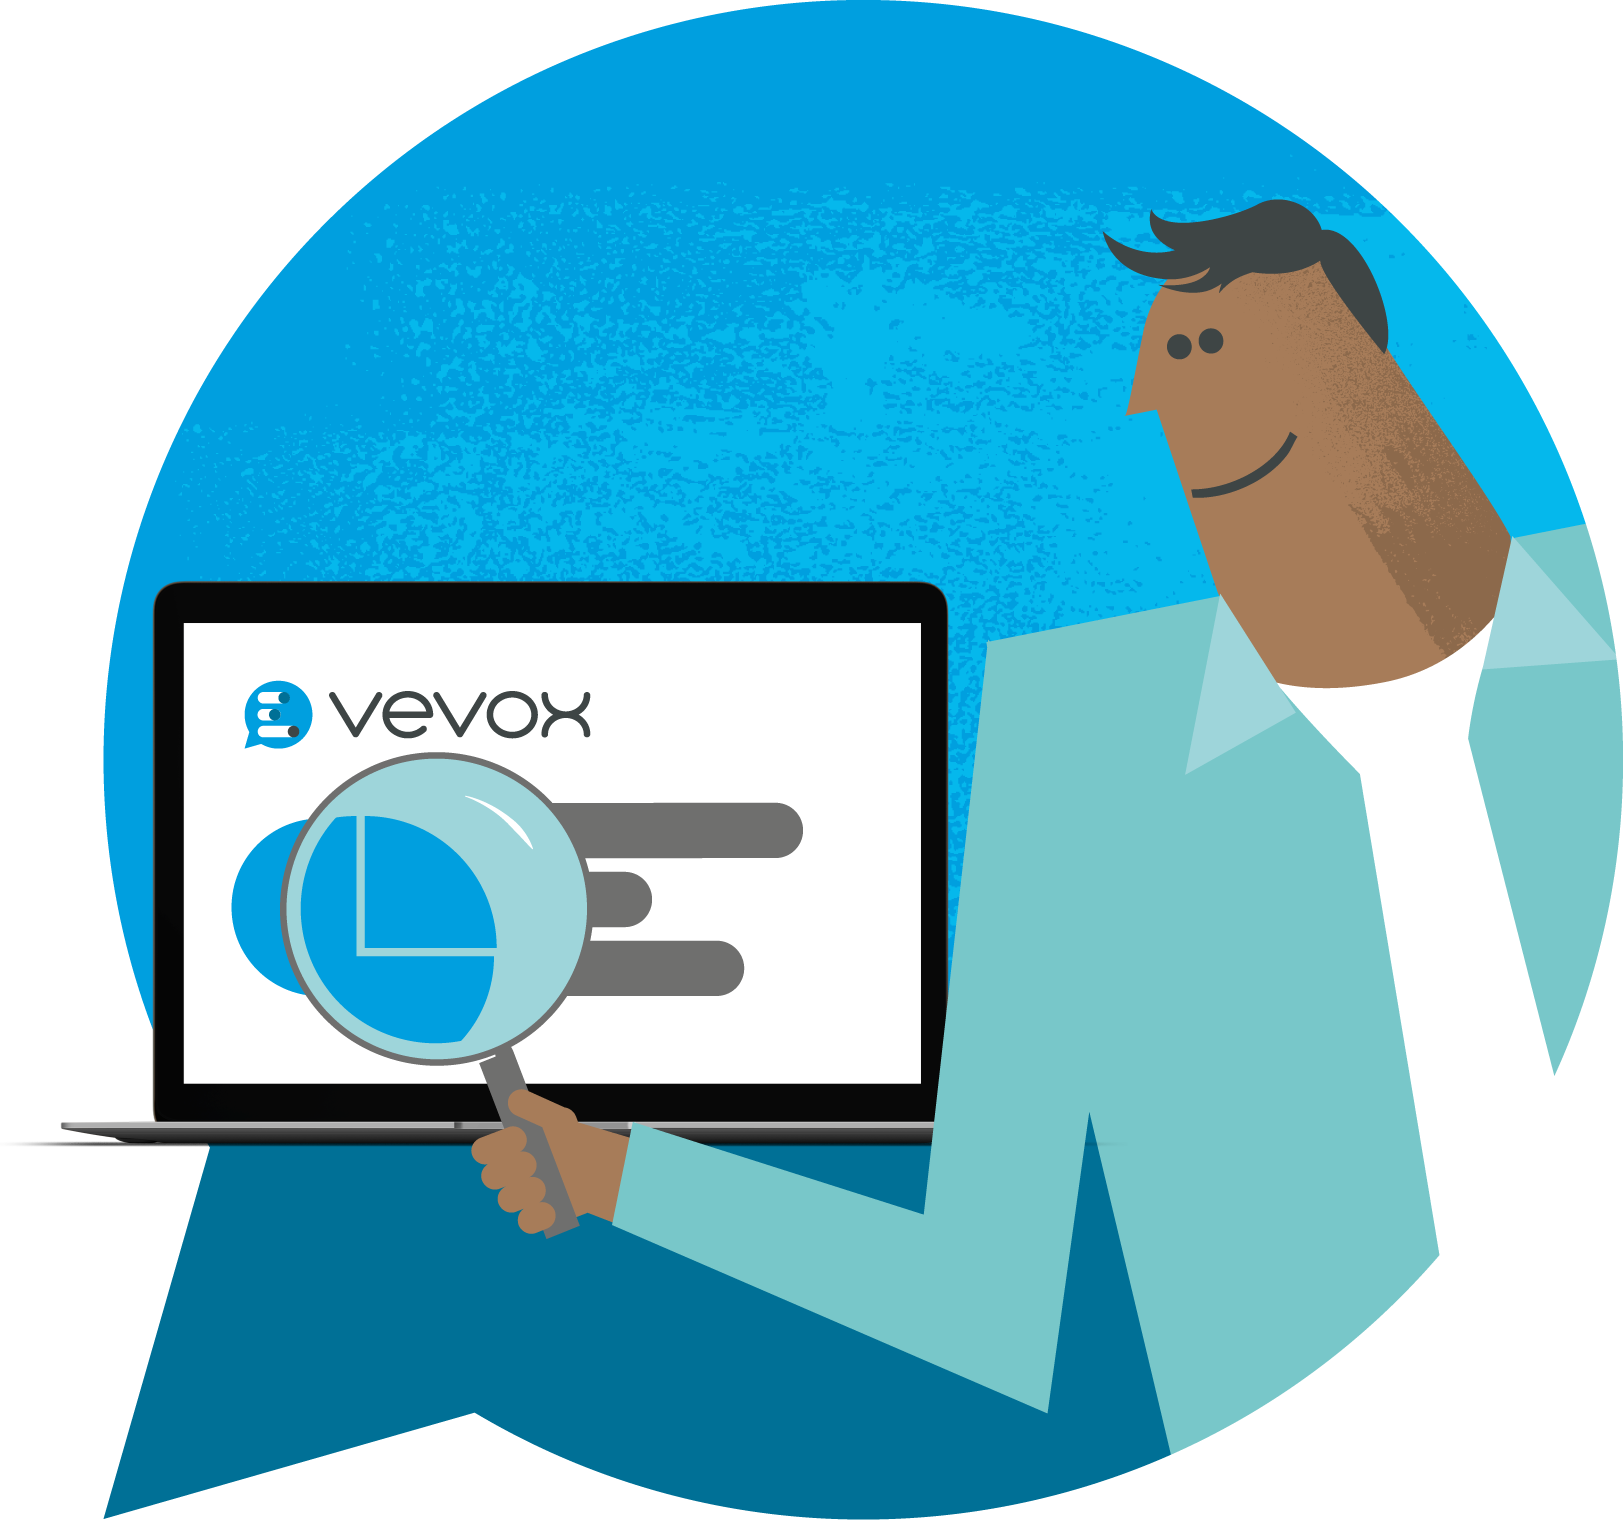 Get a Vevox account